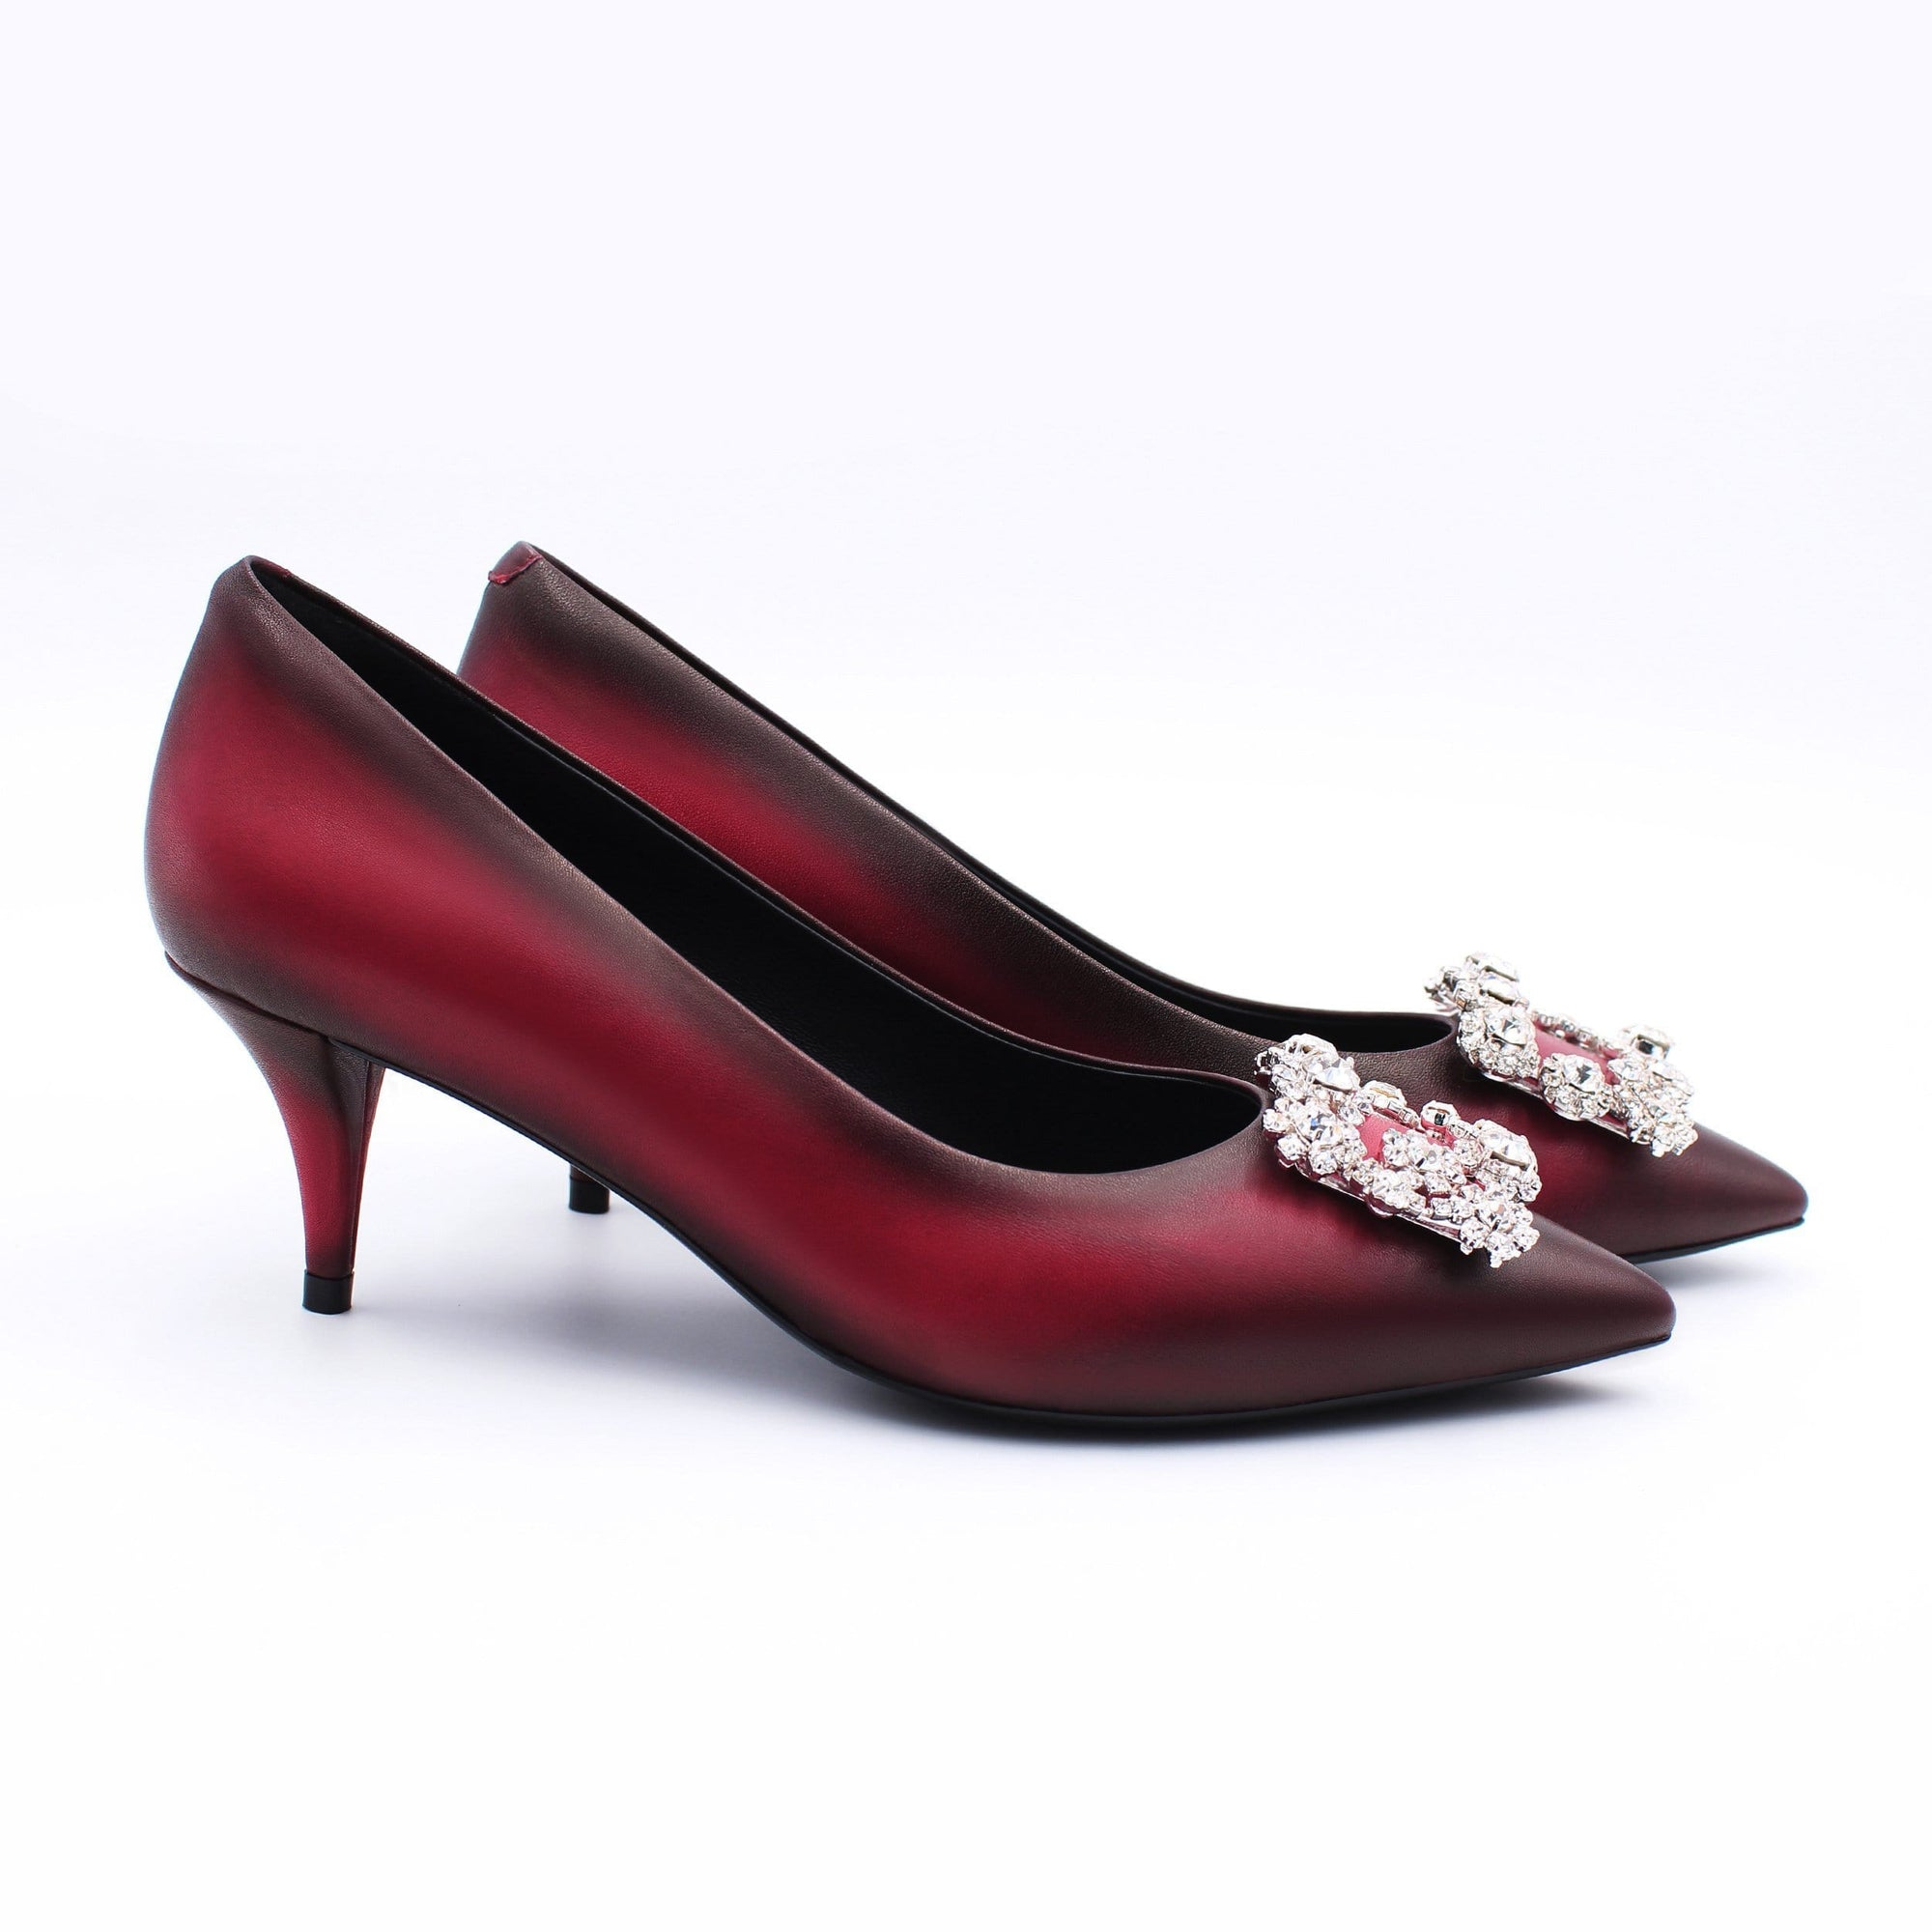 HOPE ROSA Pumps MARYLYN PUMP HAND-PAINTED FUSCHIA